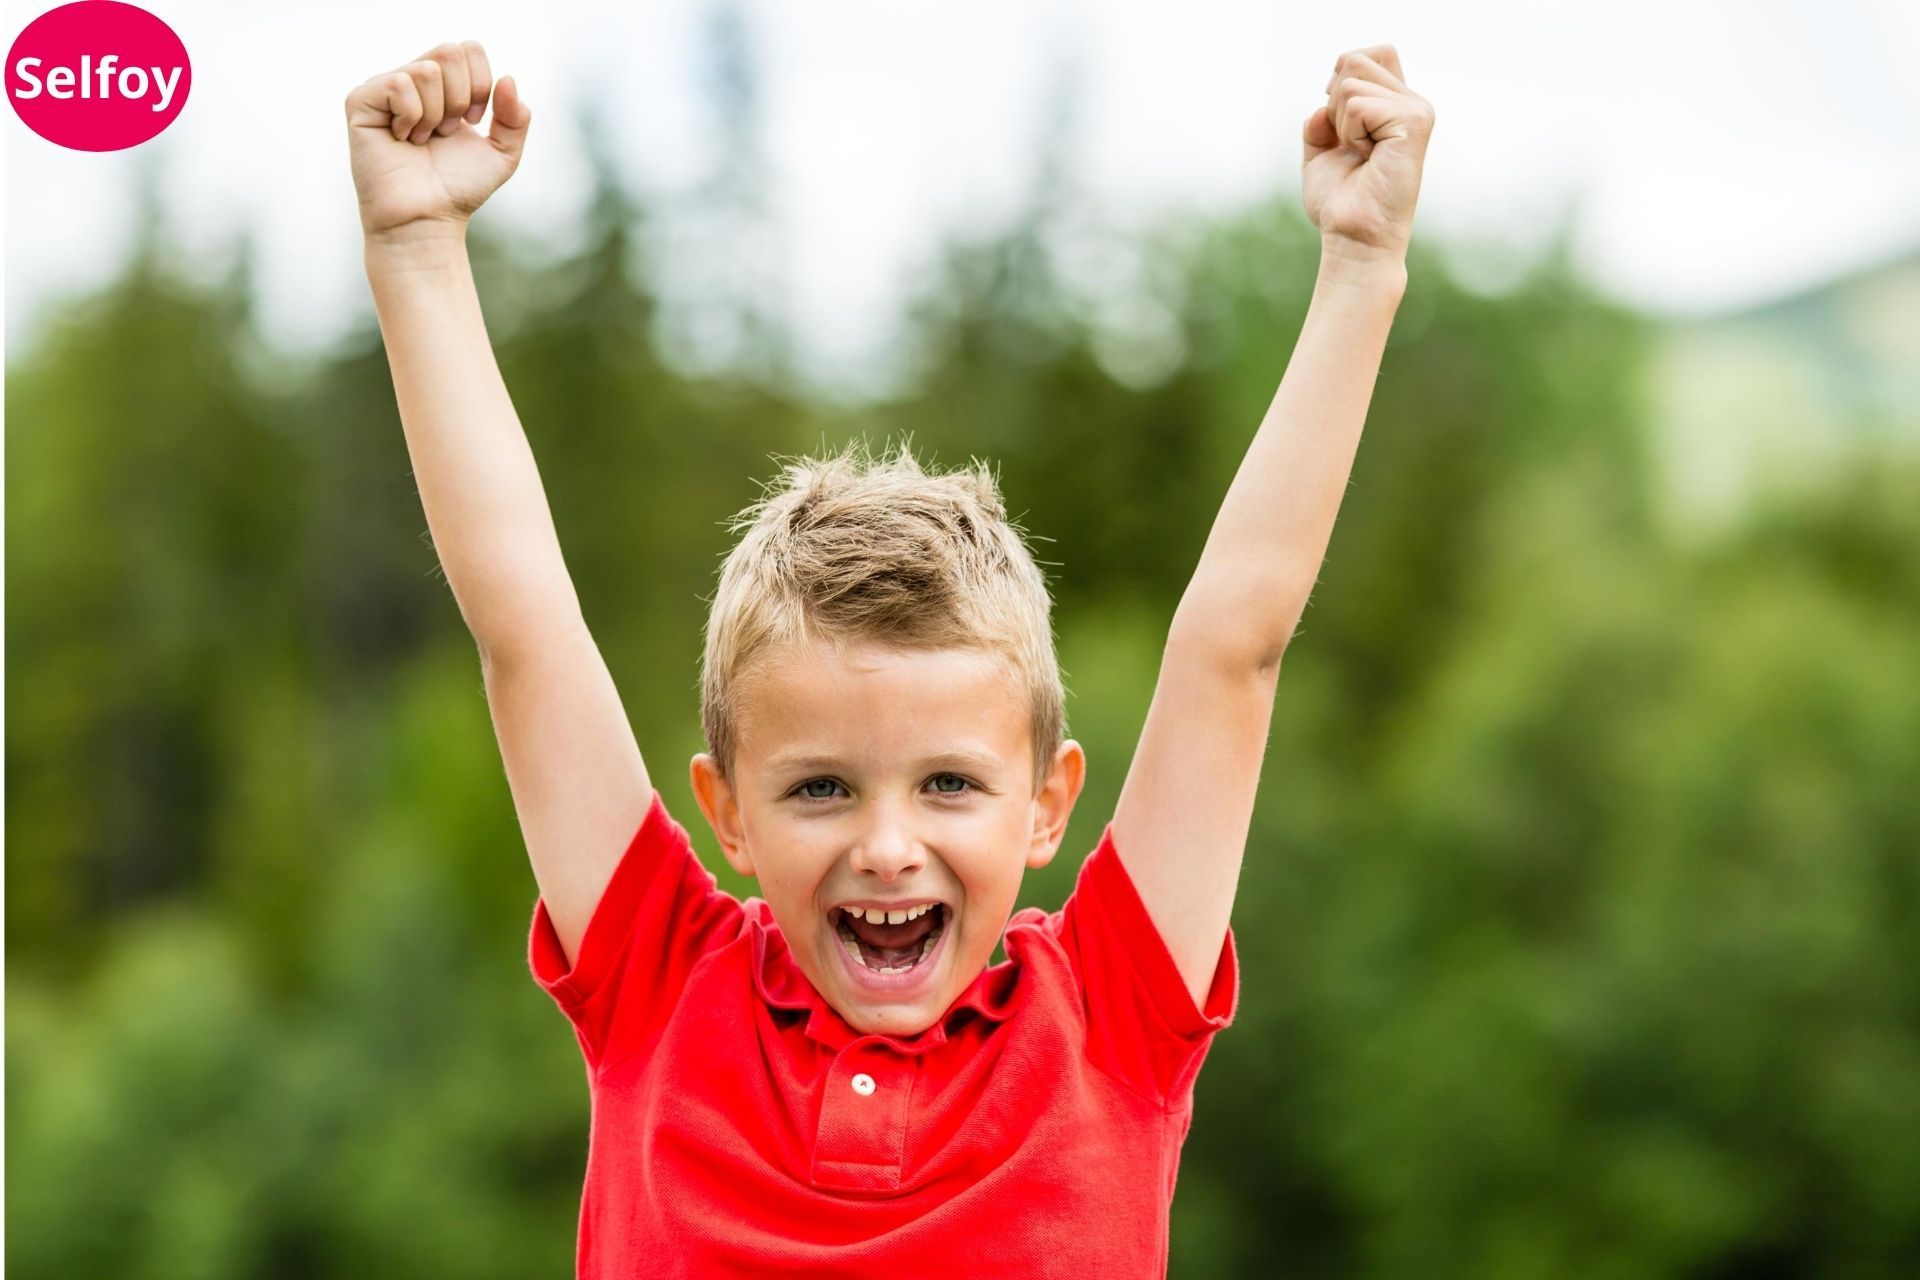 Individual boy cheering up and showing Good Personal Hygiene Helps to Develop Positive Self Esteem